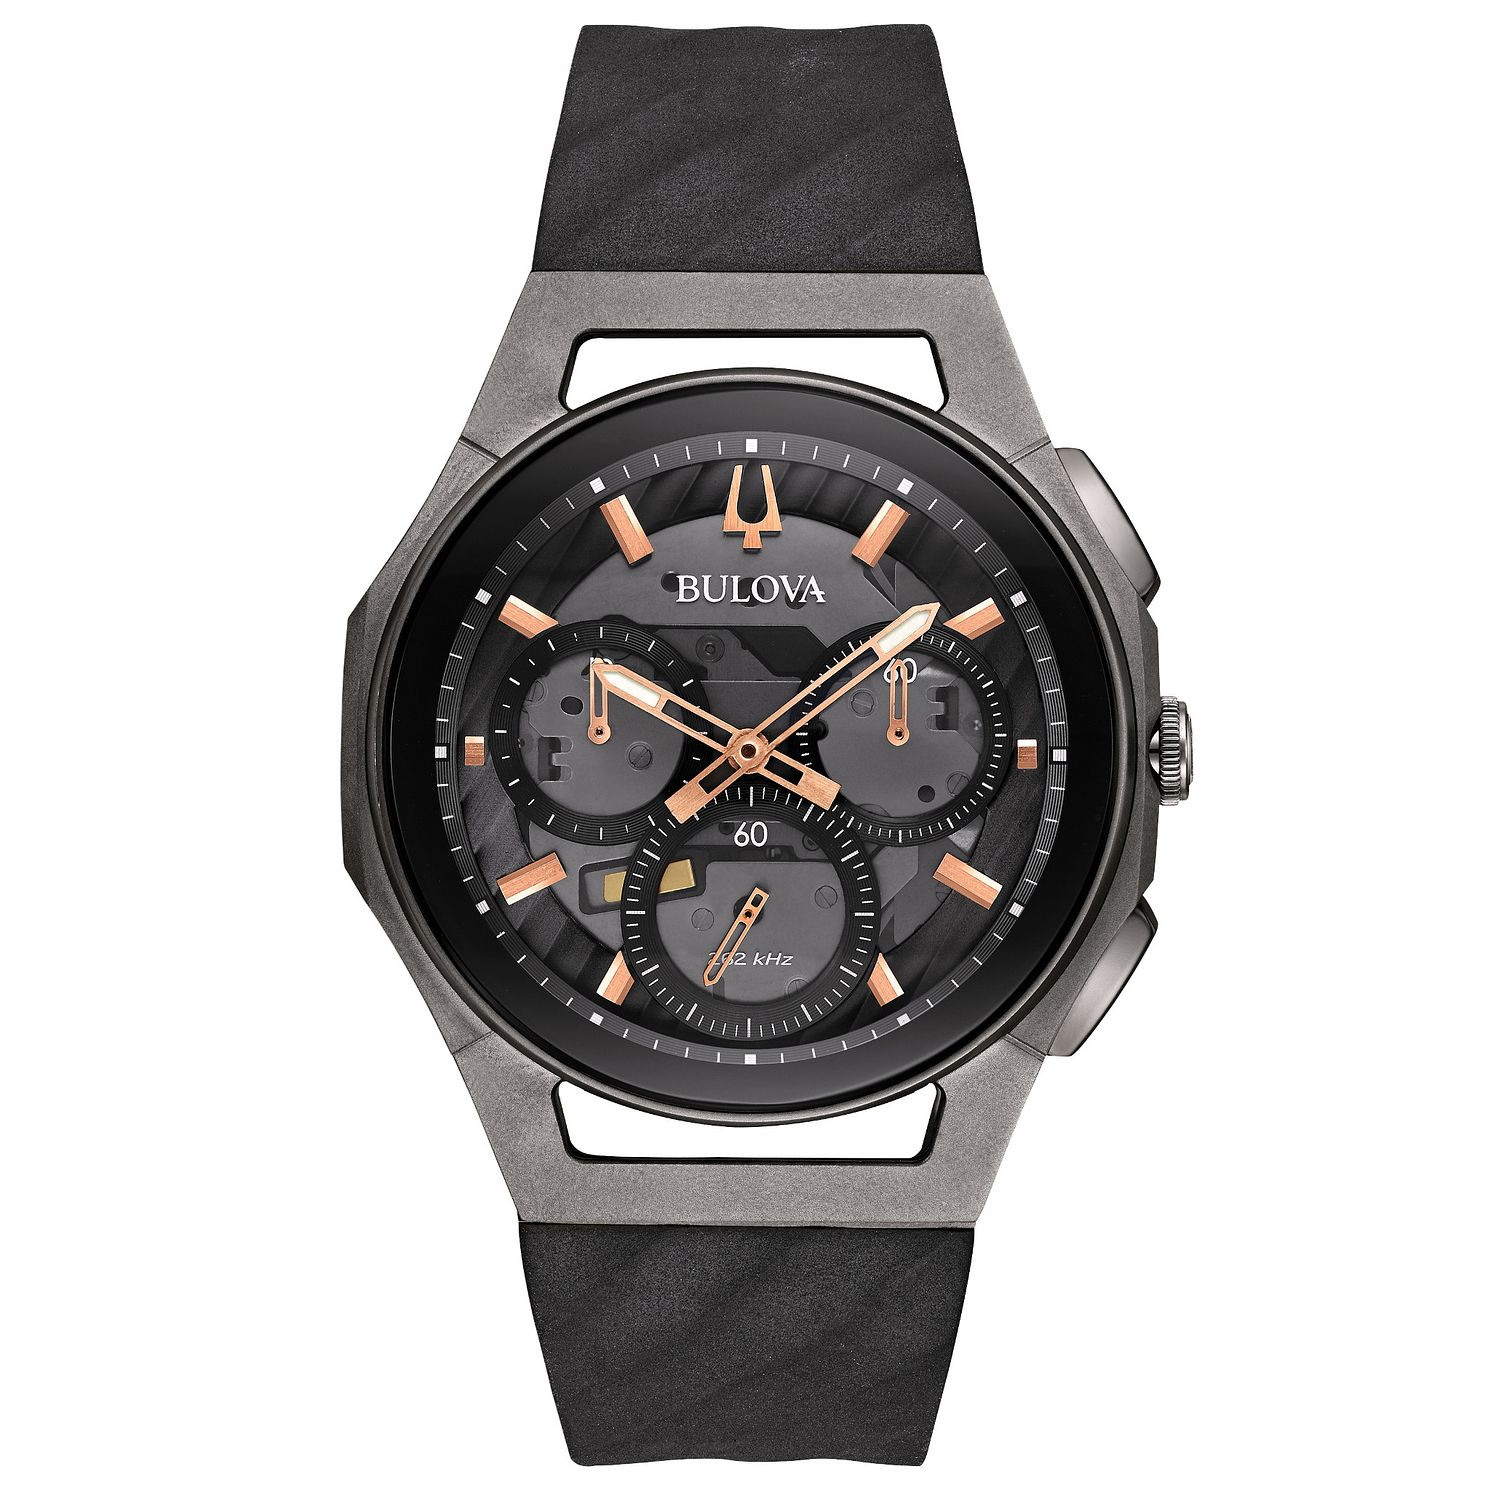 Bulova Men's Curv Chronograph Black Rubber Strap Watch - Product number 5293316